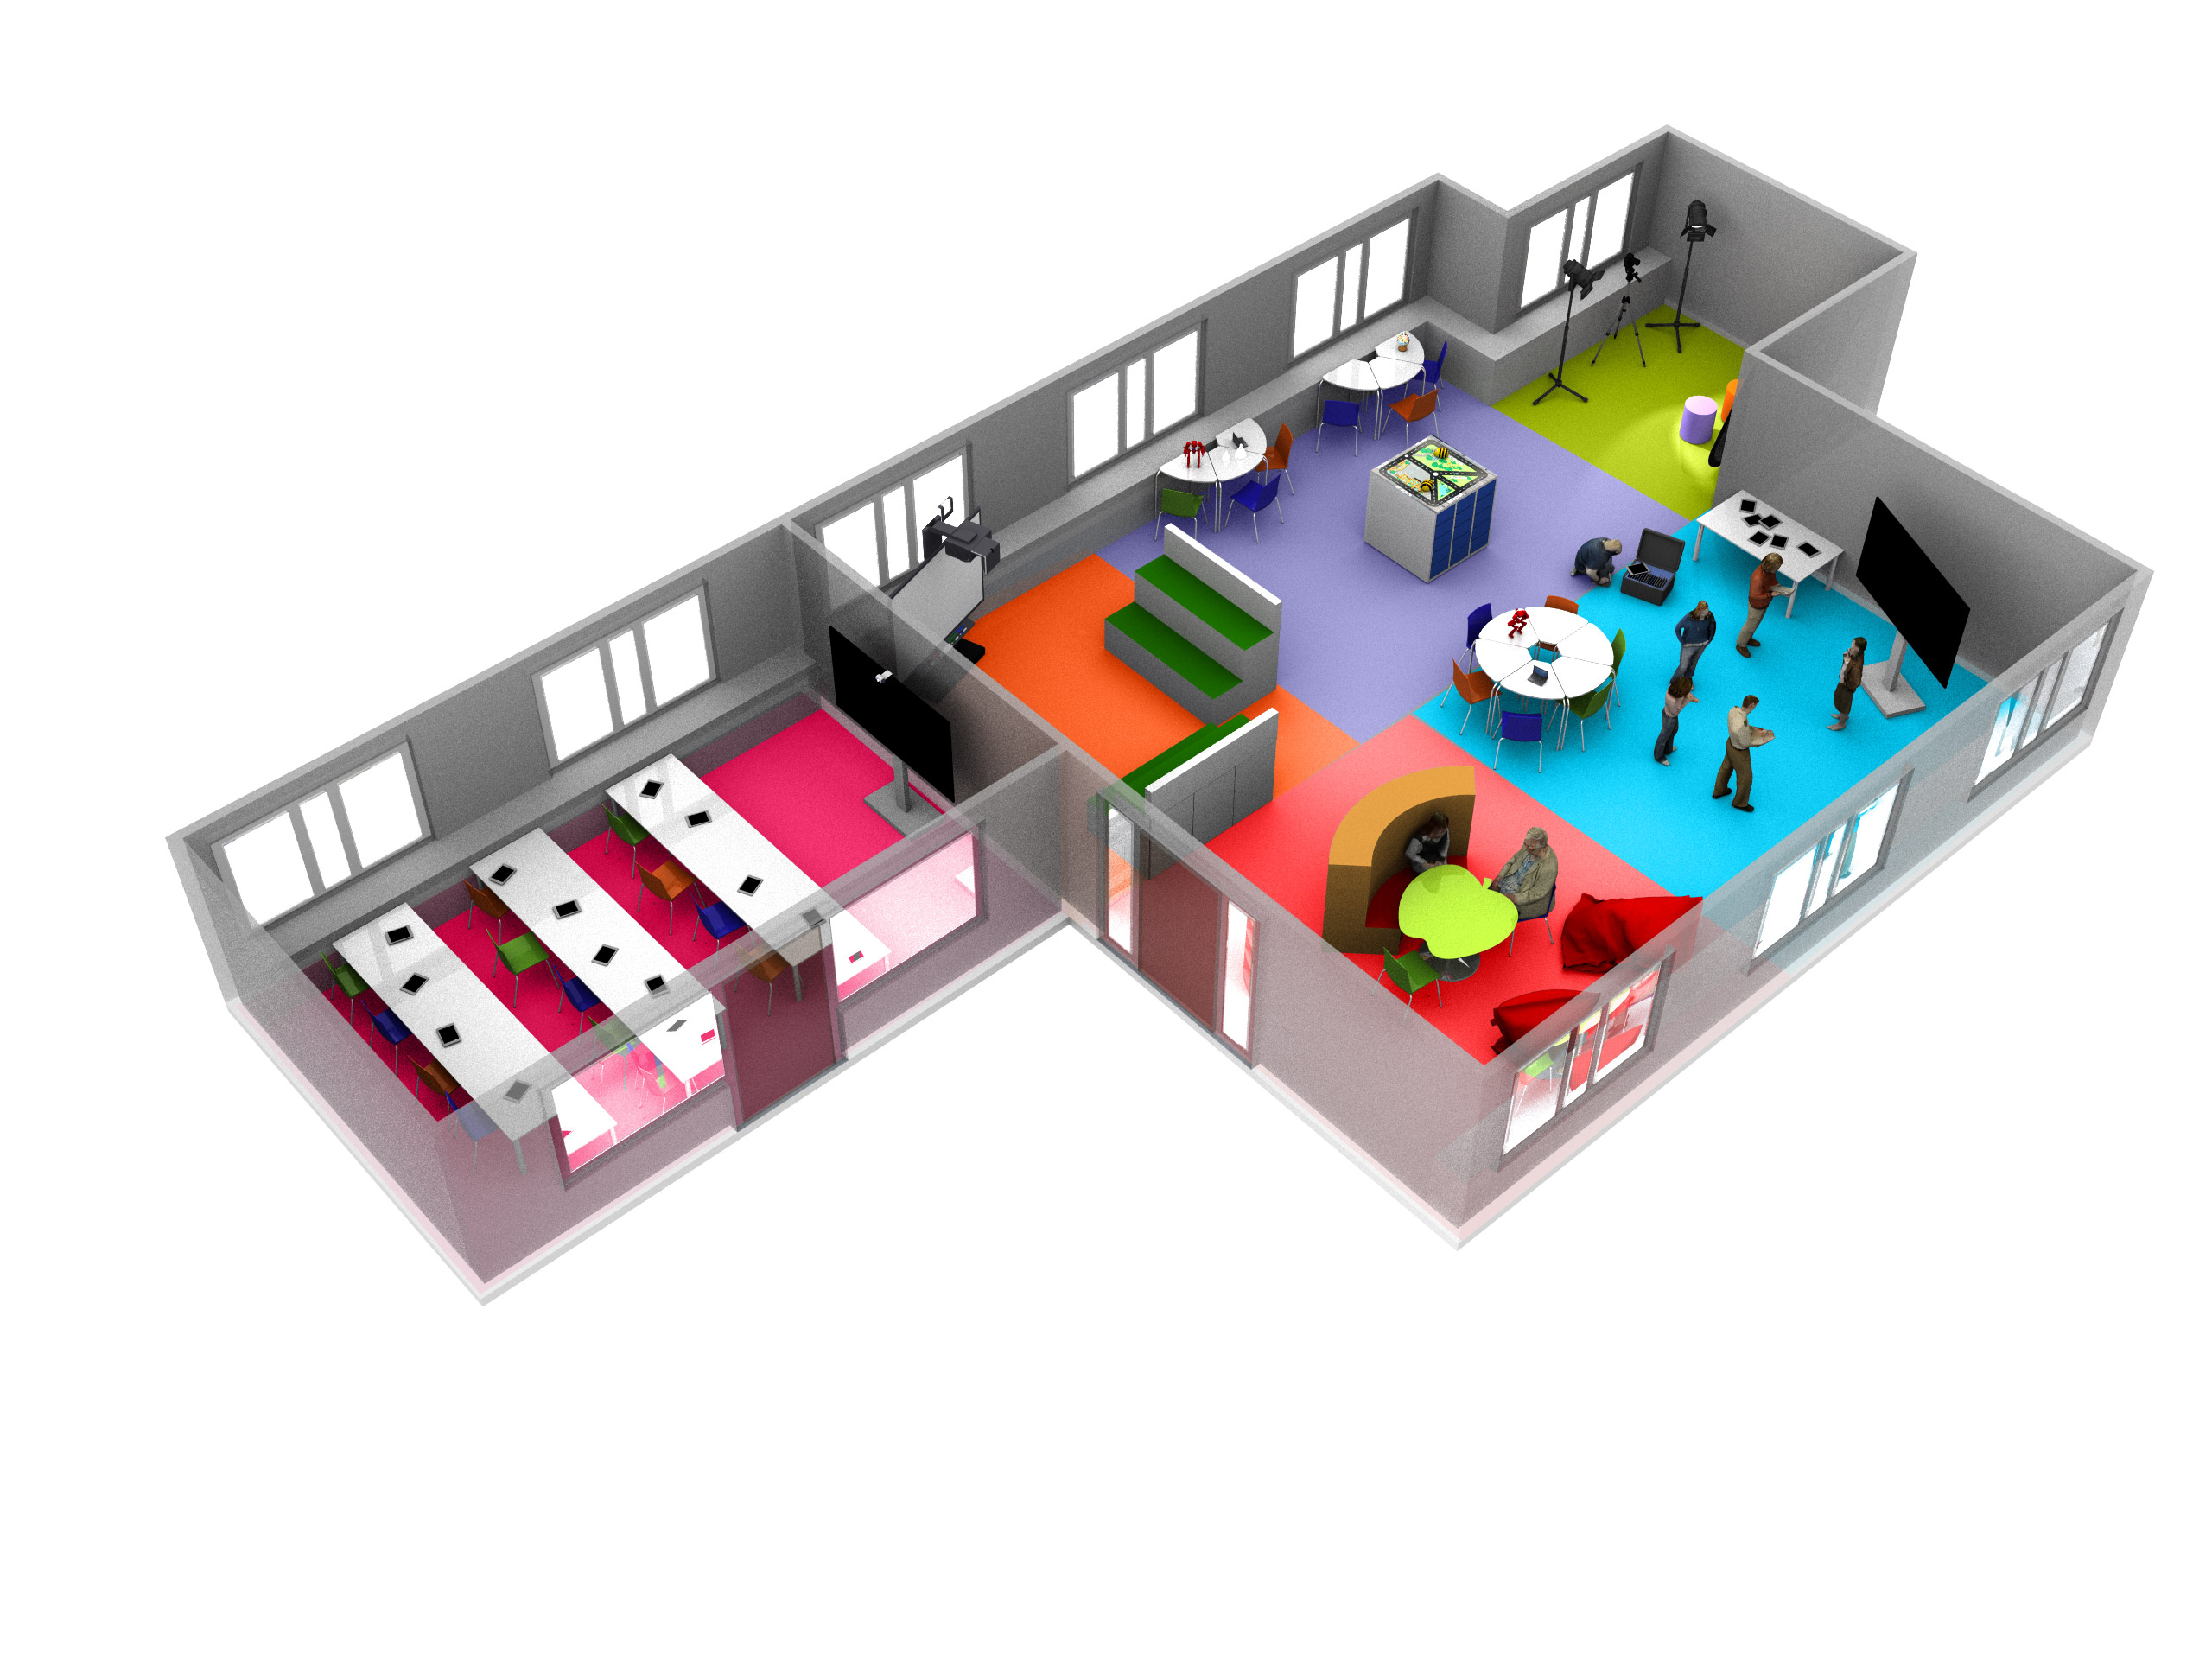 Future Classroom Lab - 3D model